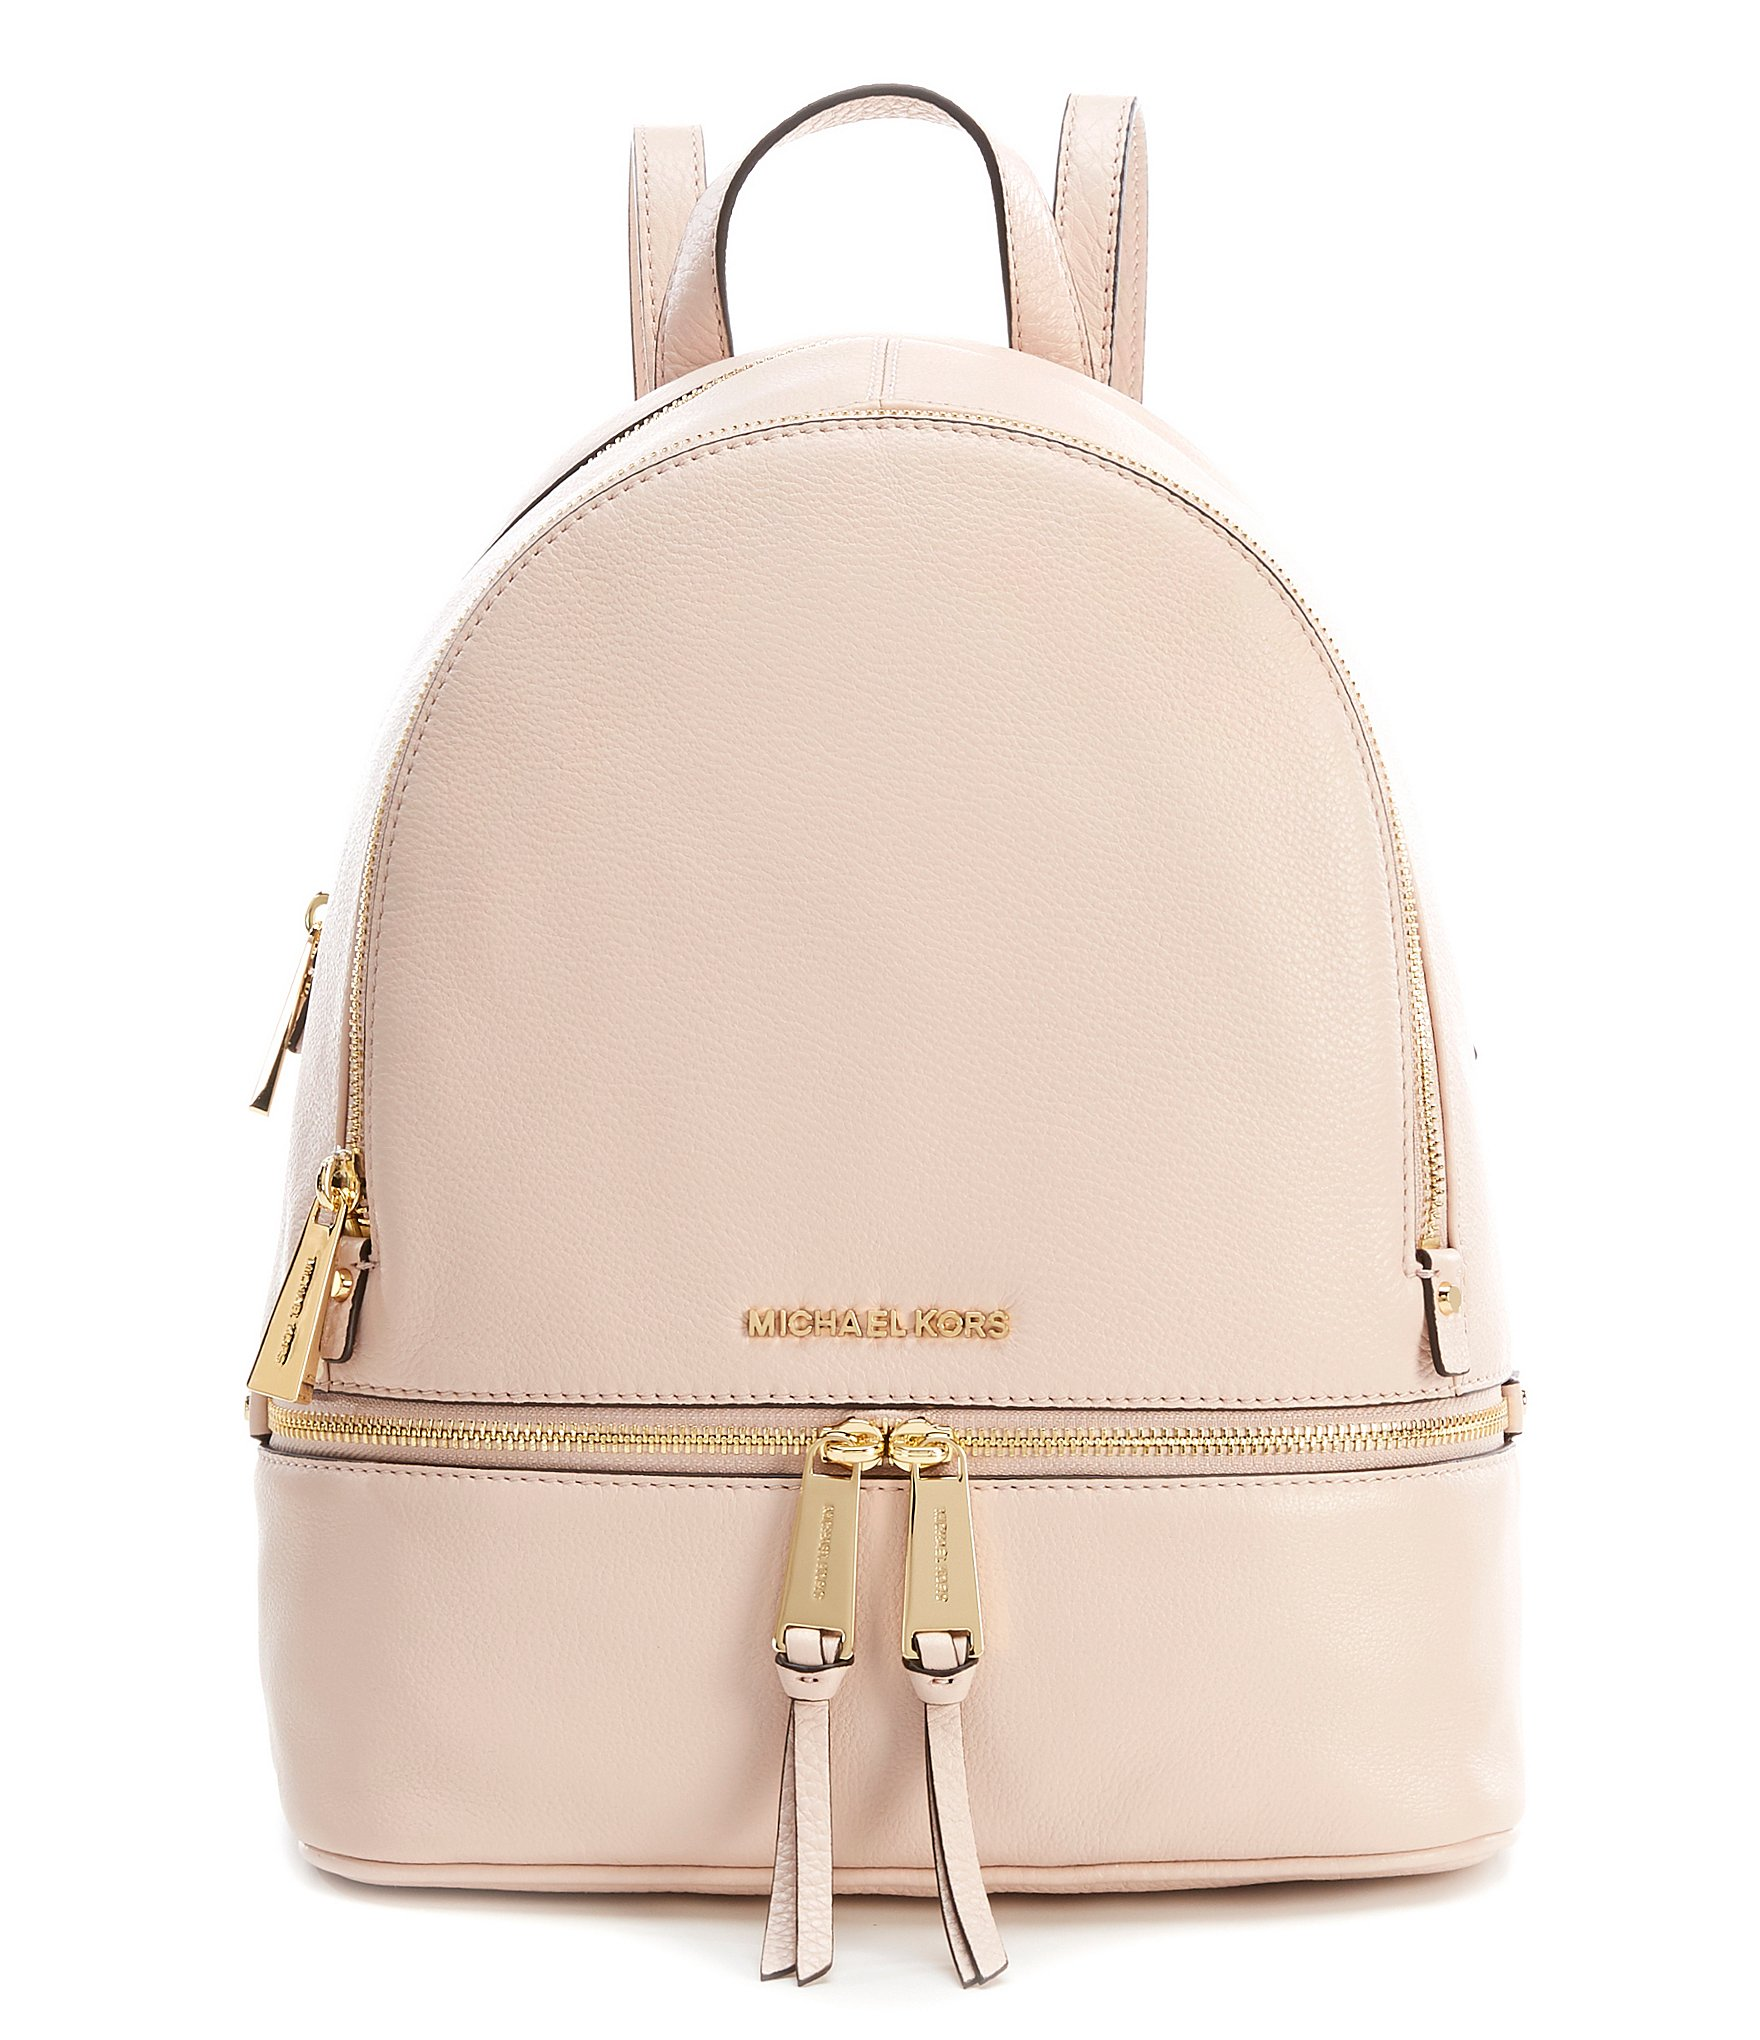 MICHAEL Michael Kors Rhea Zip Medium Pebble Leather Backpack  b3c1ec5888fd7